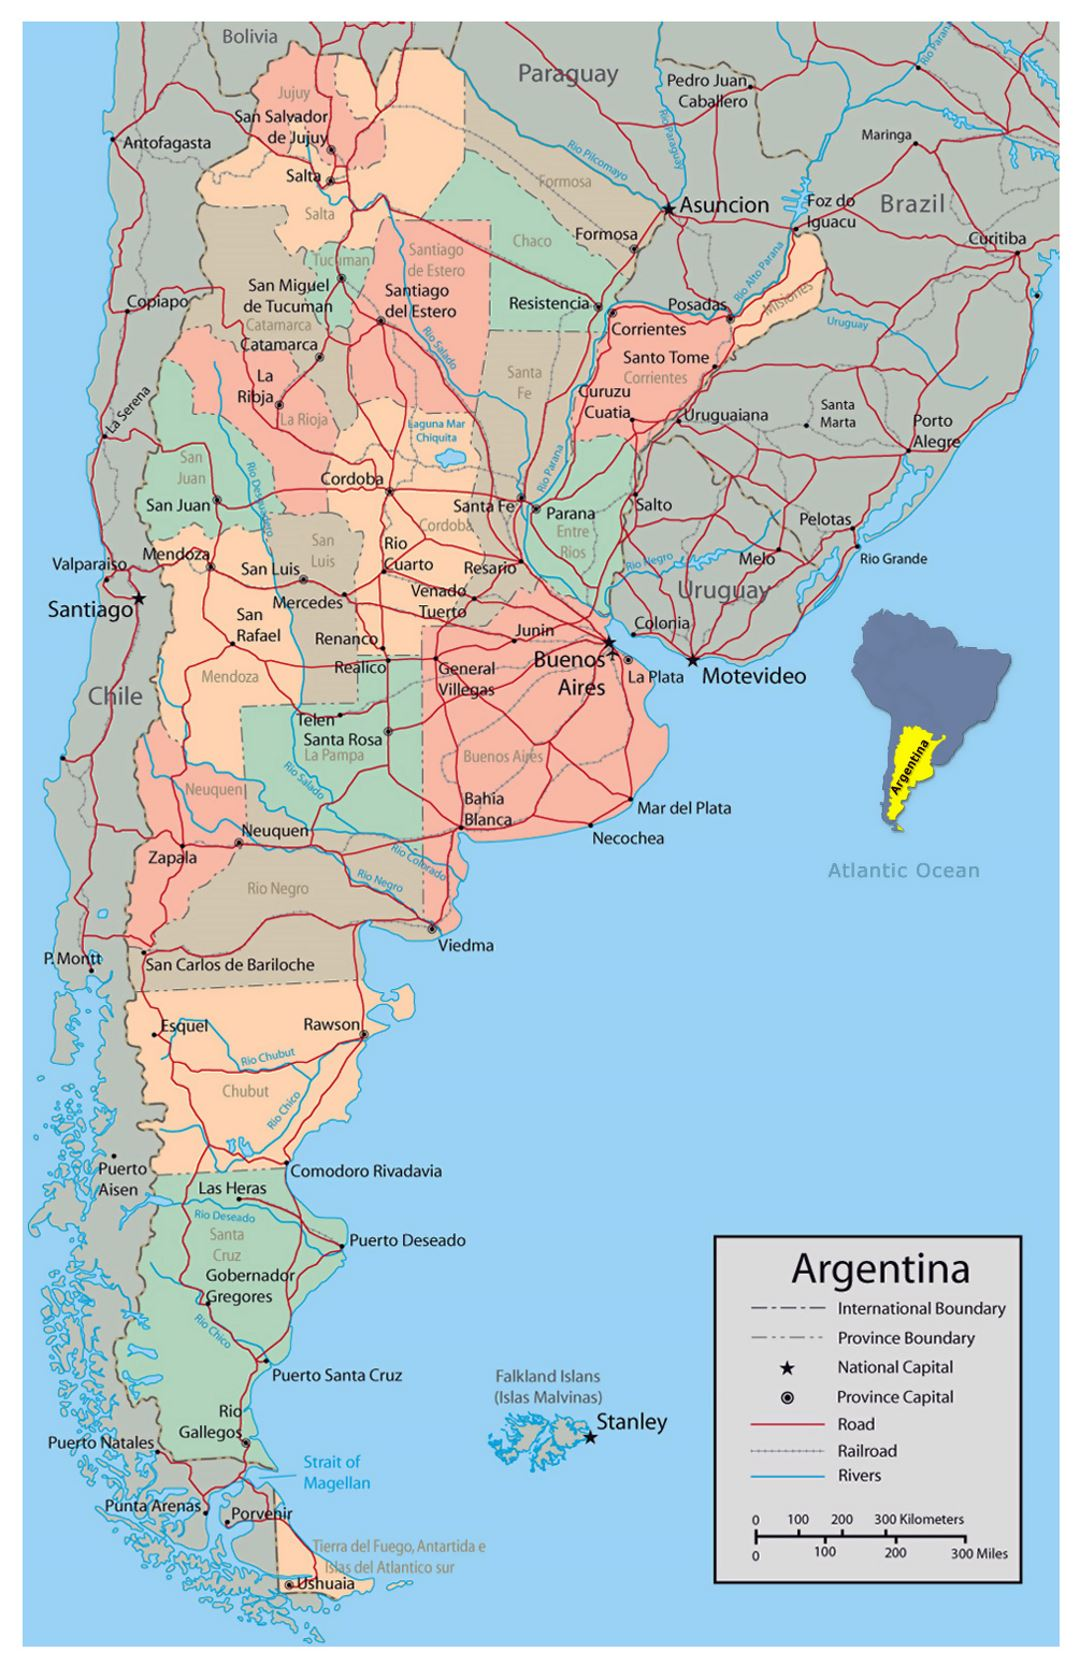 Detailed Political And Administrative Map Of Argentina With Major - Argentina map cities